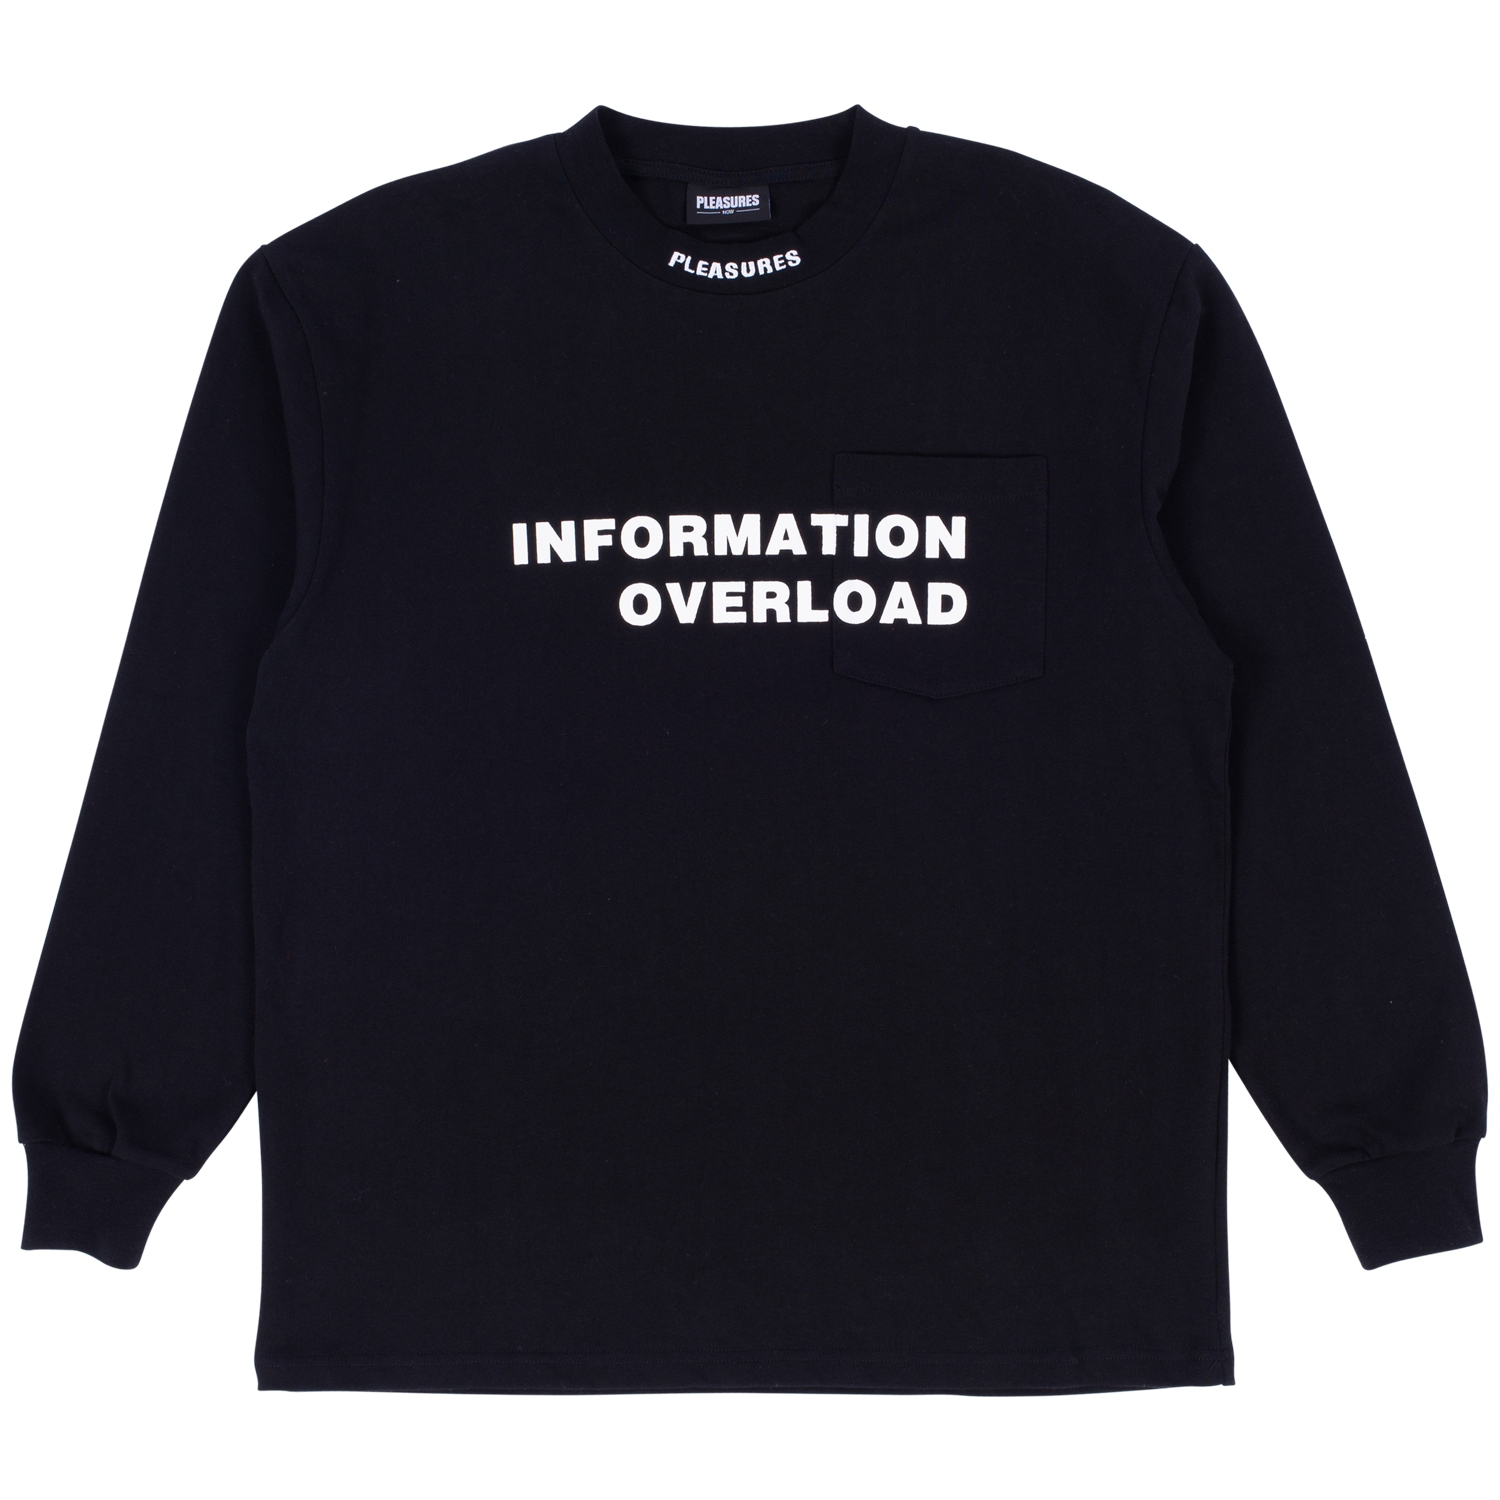 【PLEASURES/プレジャーズ】INFORMATION HEAVY WEIGHT LONG SLEEVE カットソー / BLACK